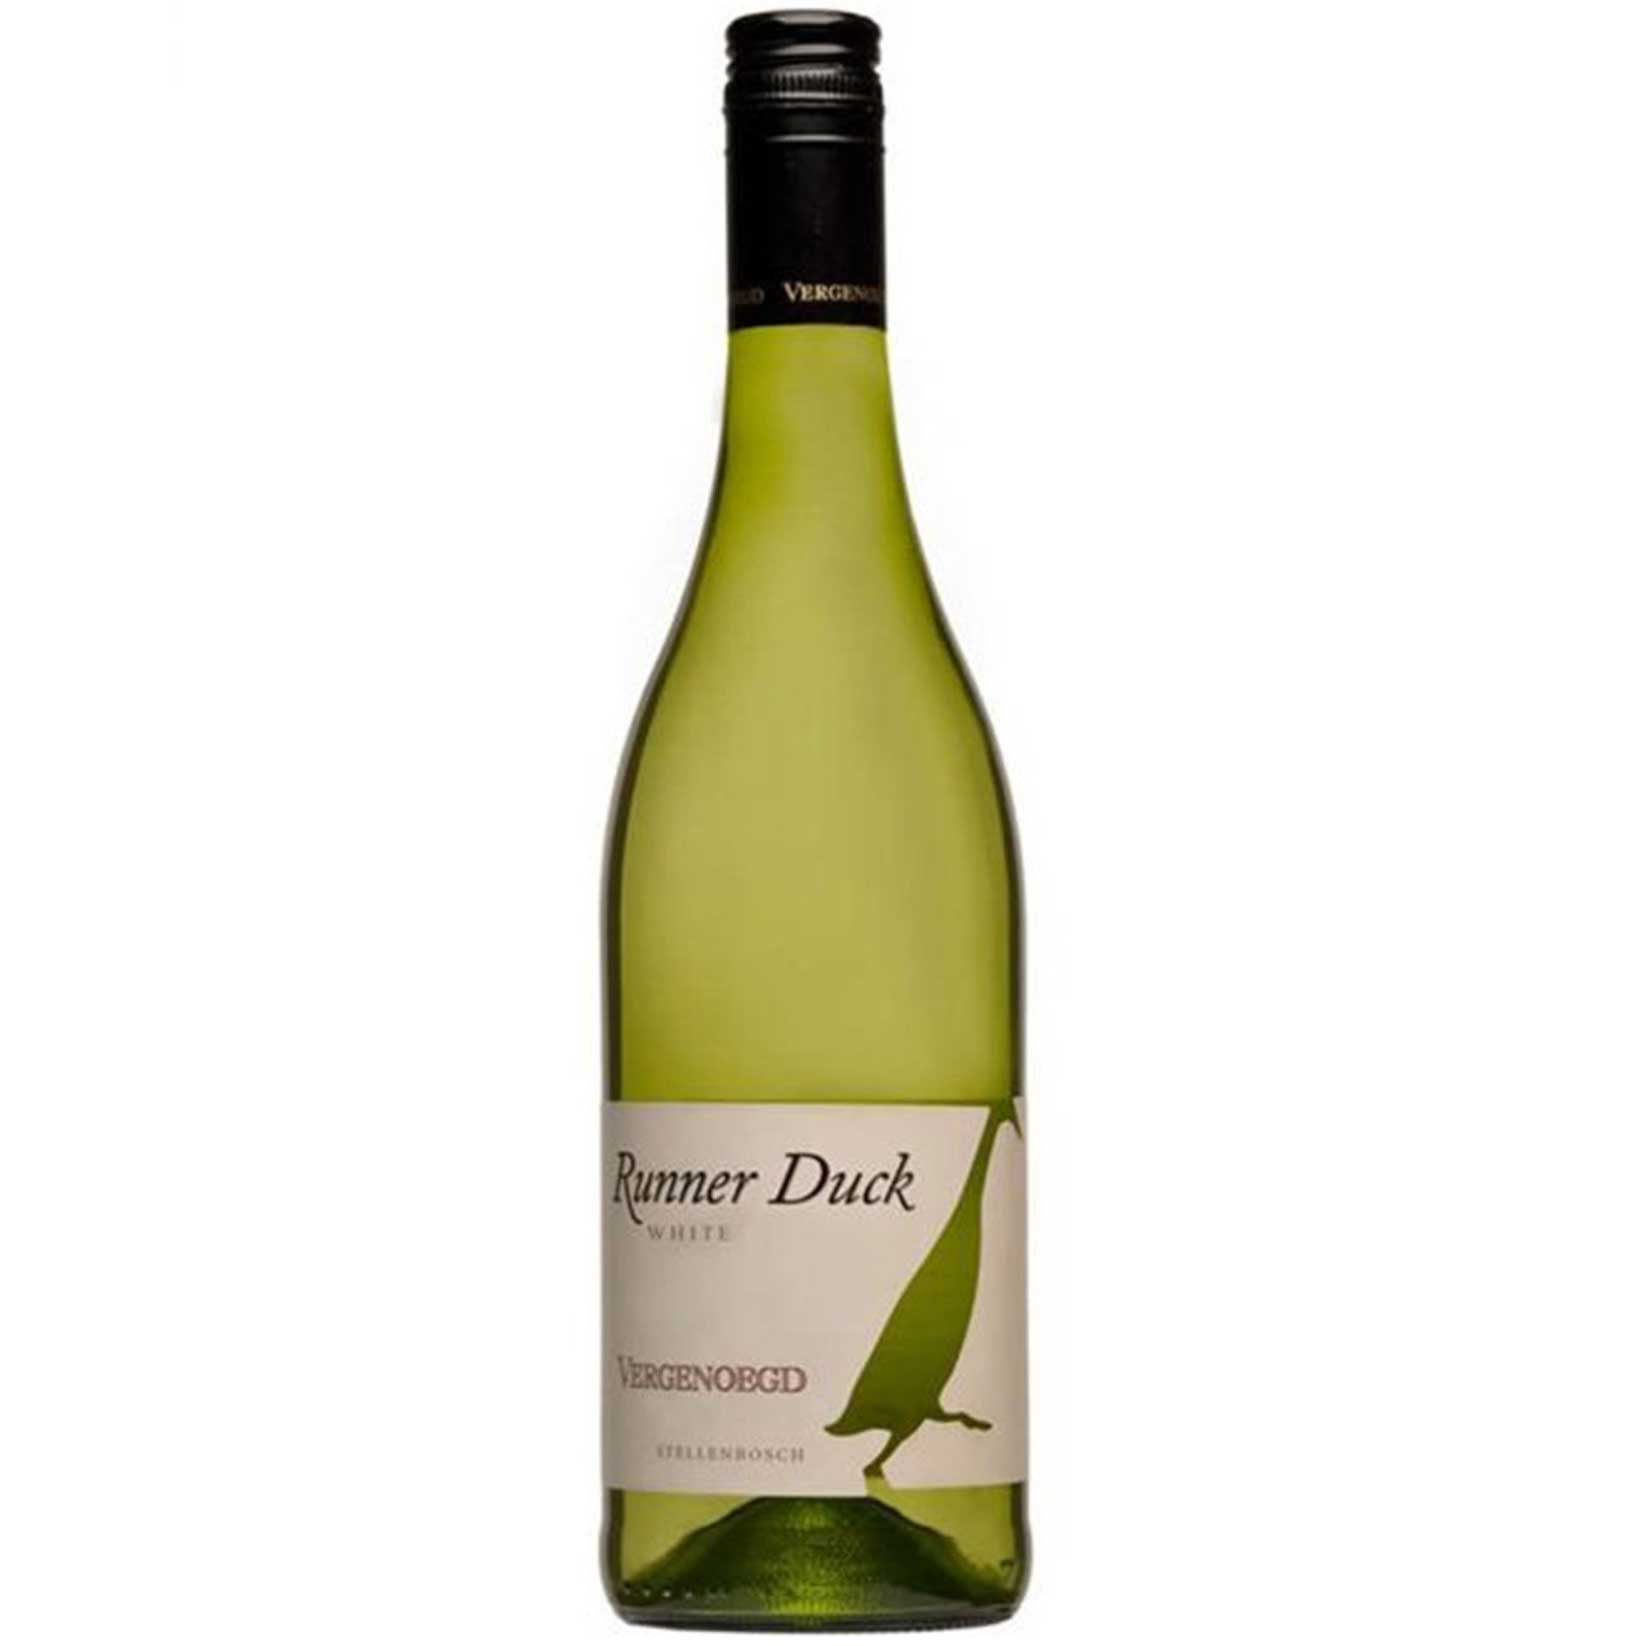 White Wine Vergenoegd Runner Duck White south african wine - Brands From Africa